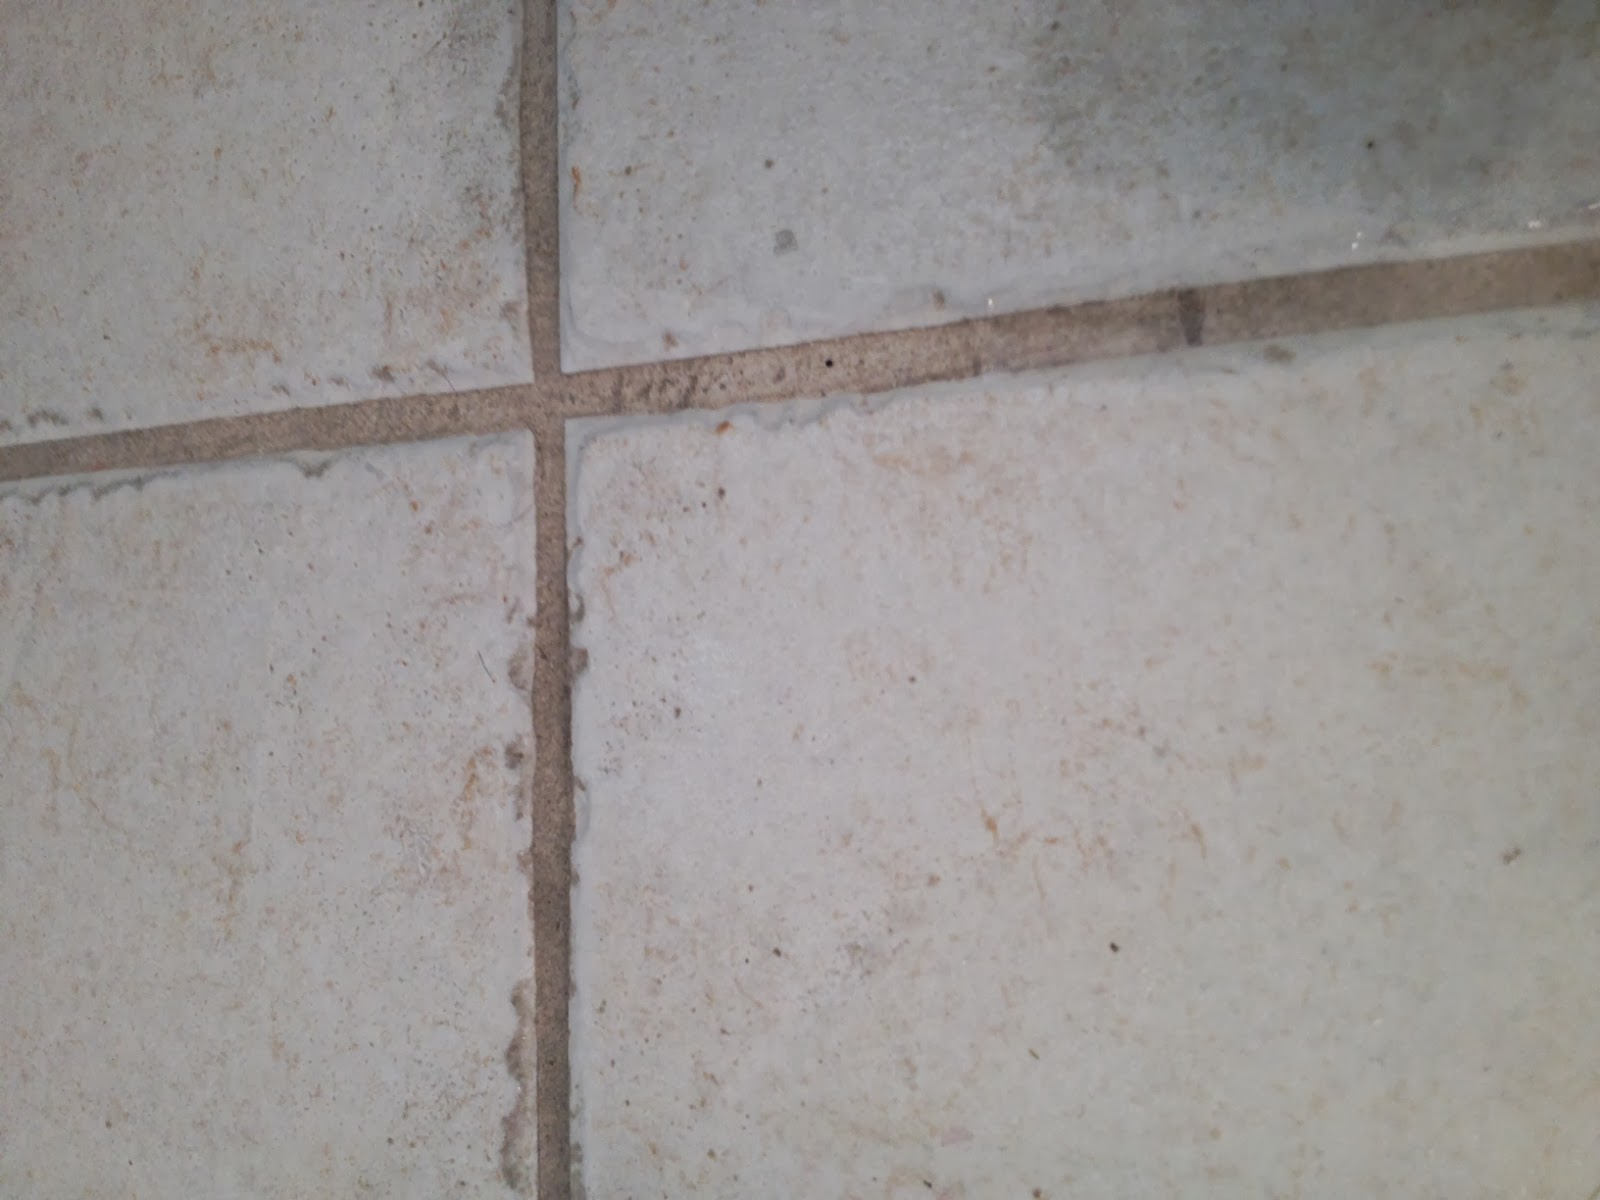 Two it yourself how to clean tile floor grout without chemicals wednesday january 22 2014 dailygadgetfo Gallery